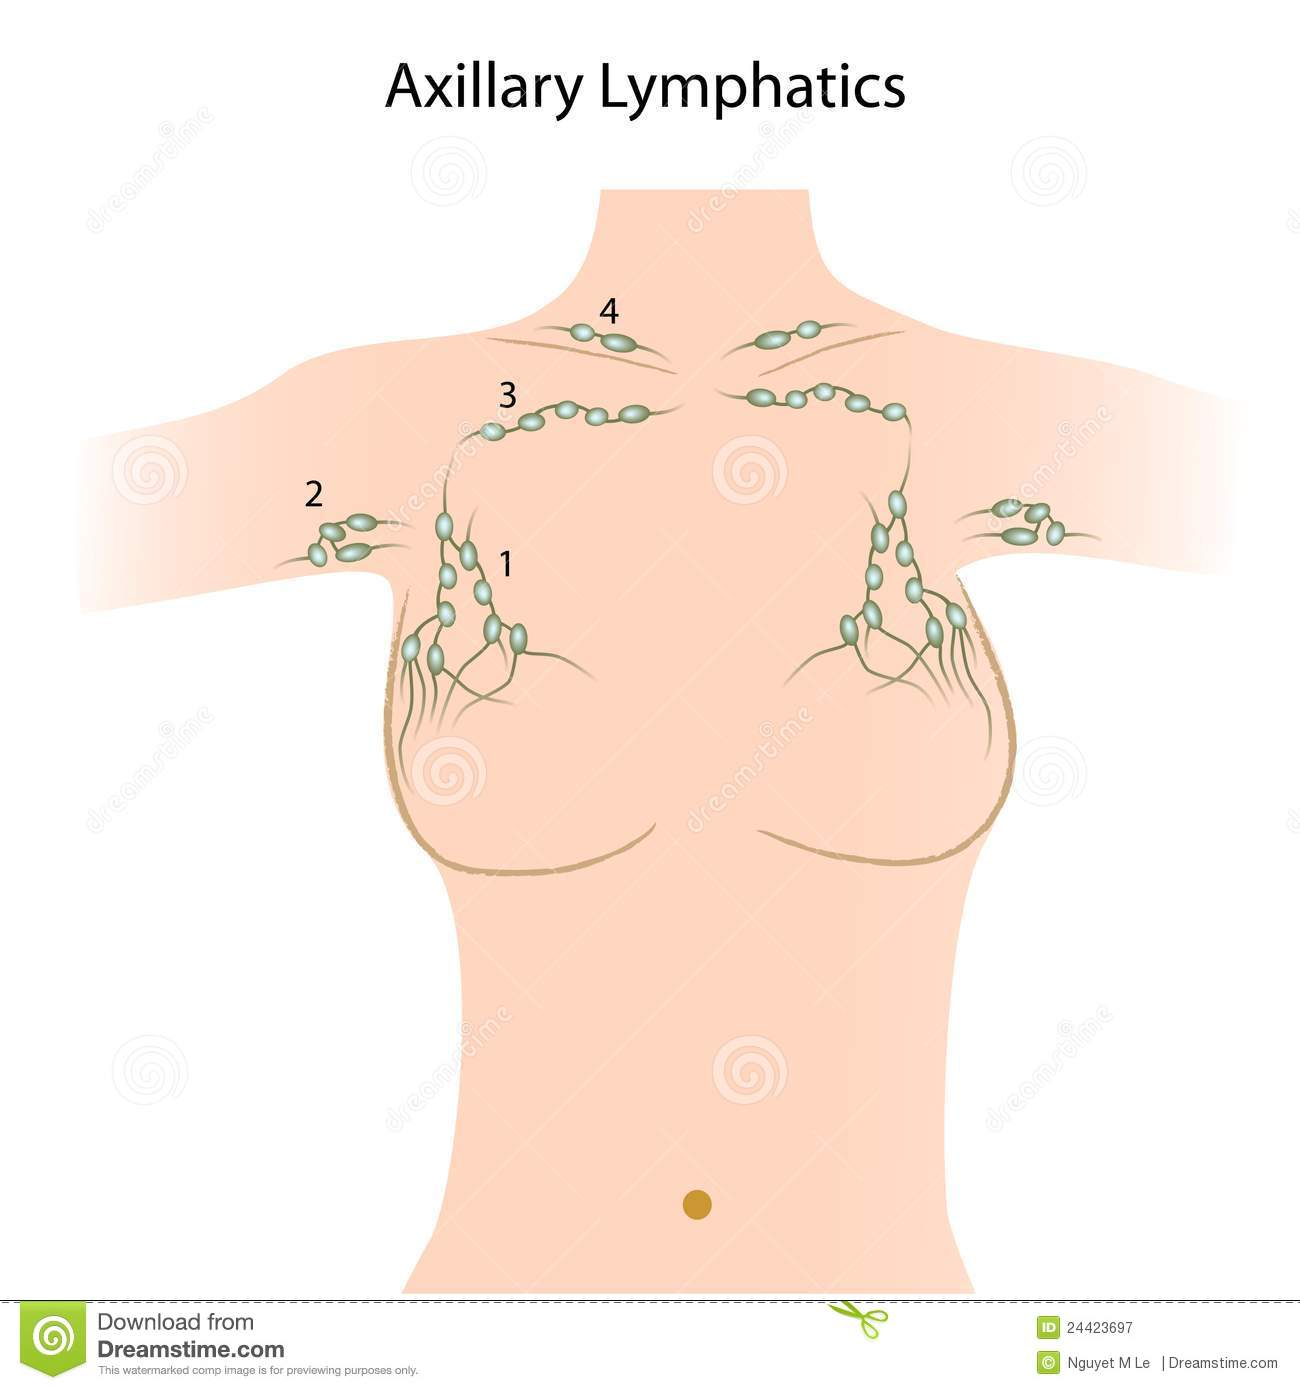 Ganglions lymphatiques axillaires